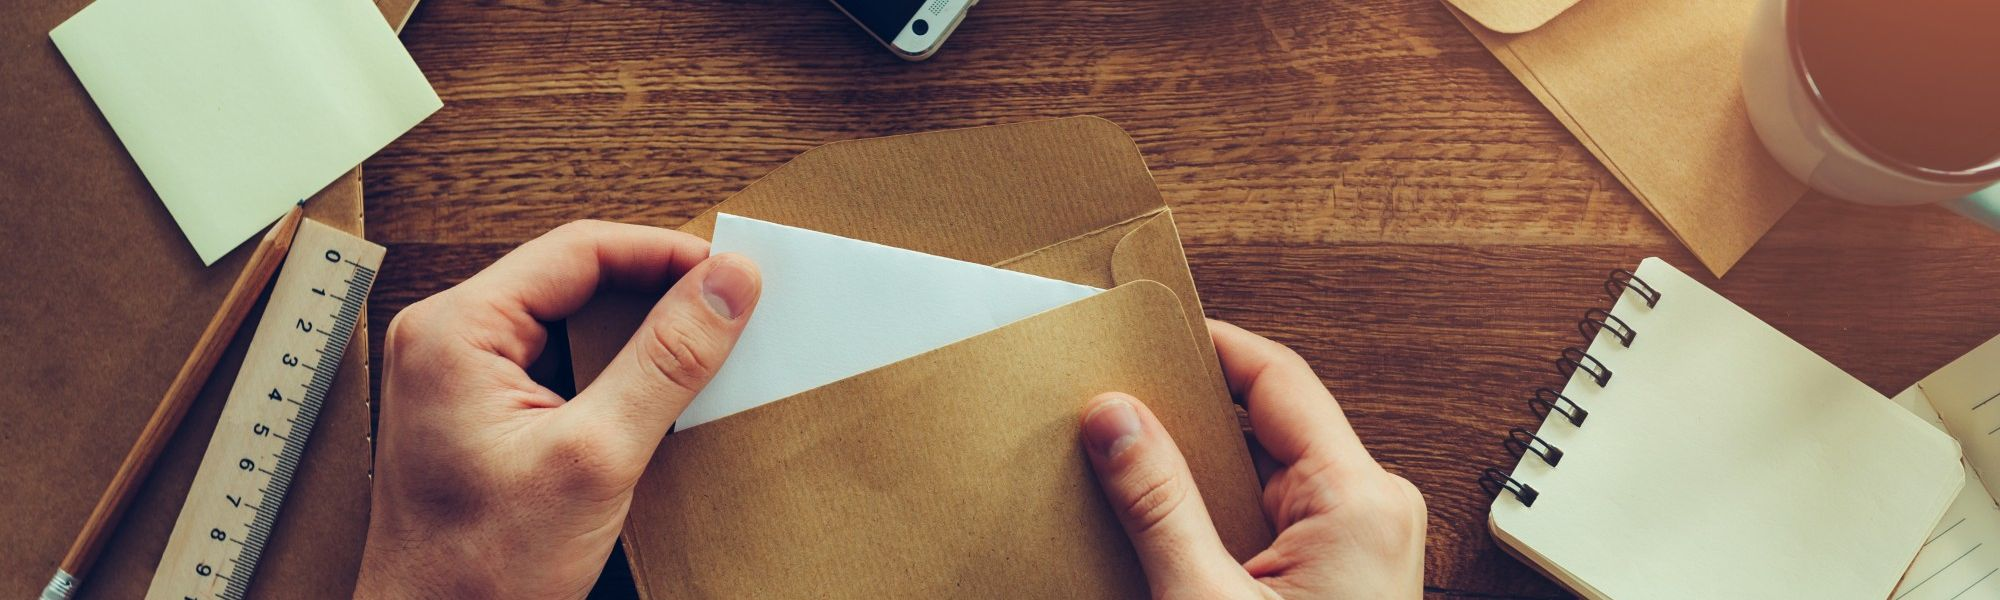 person stuffing an envelope with paper products on a wooden table